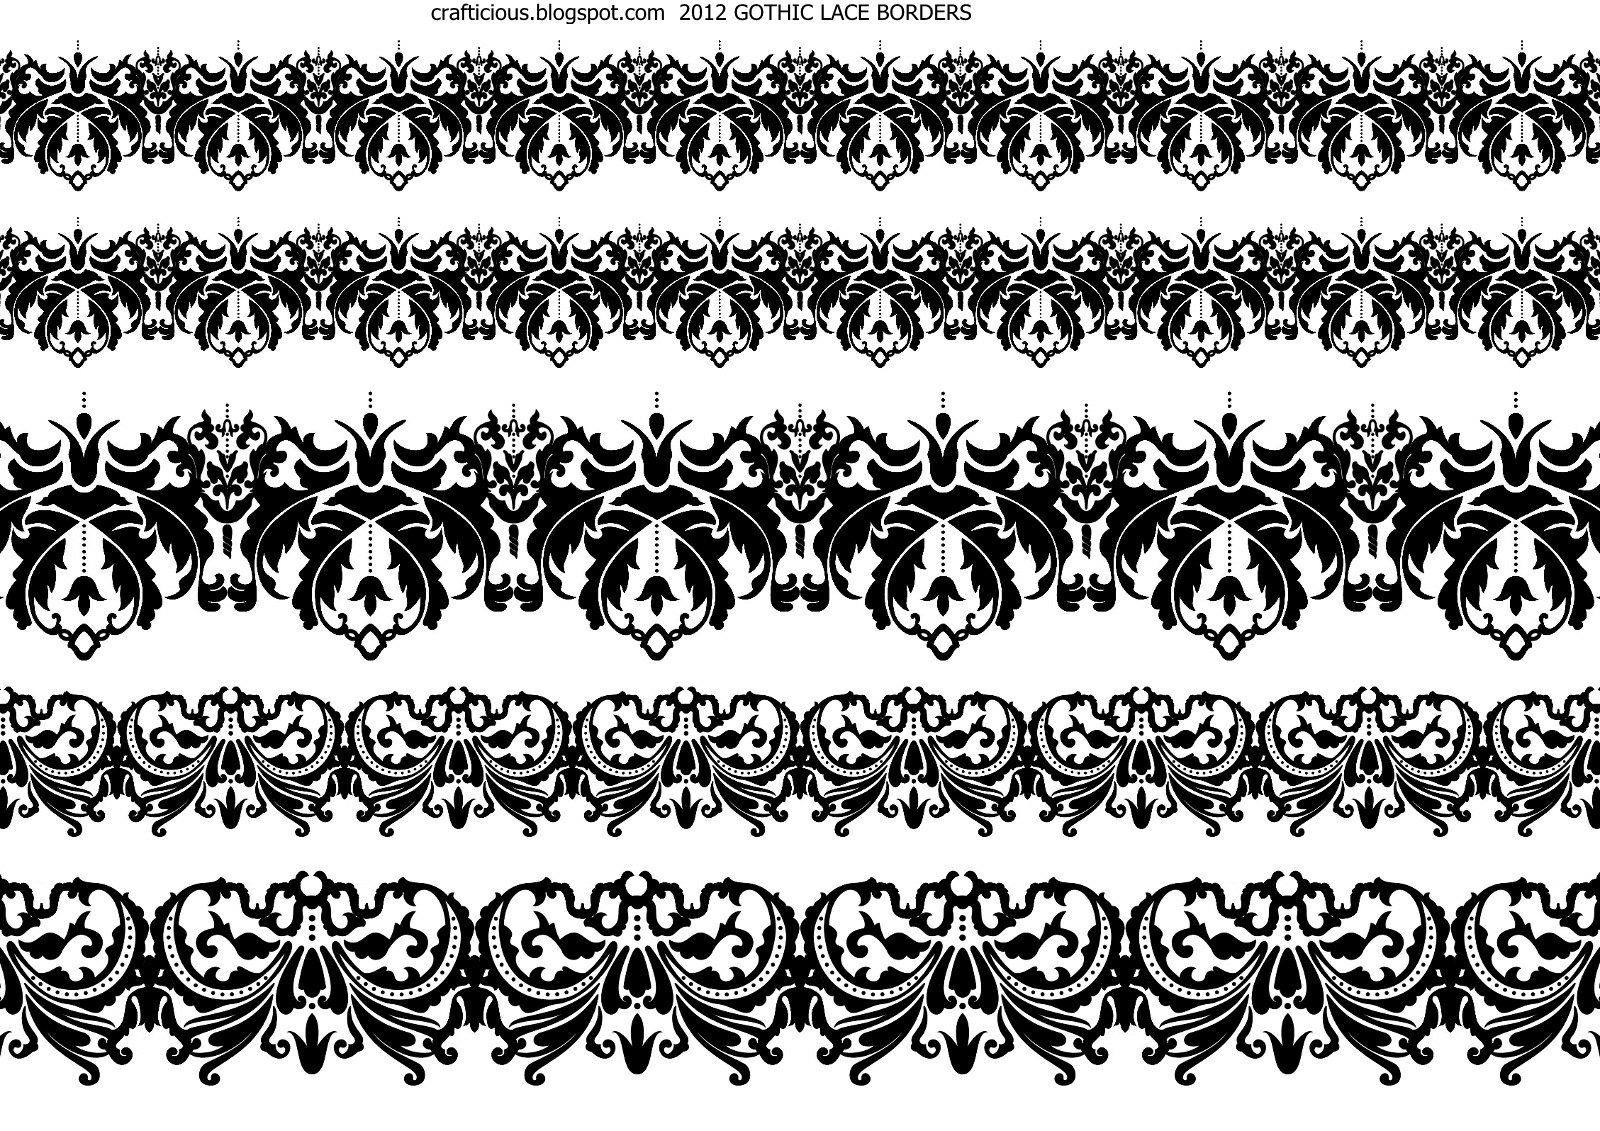 Crafticious Digital Lace Borders Bats